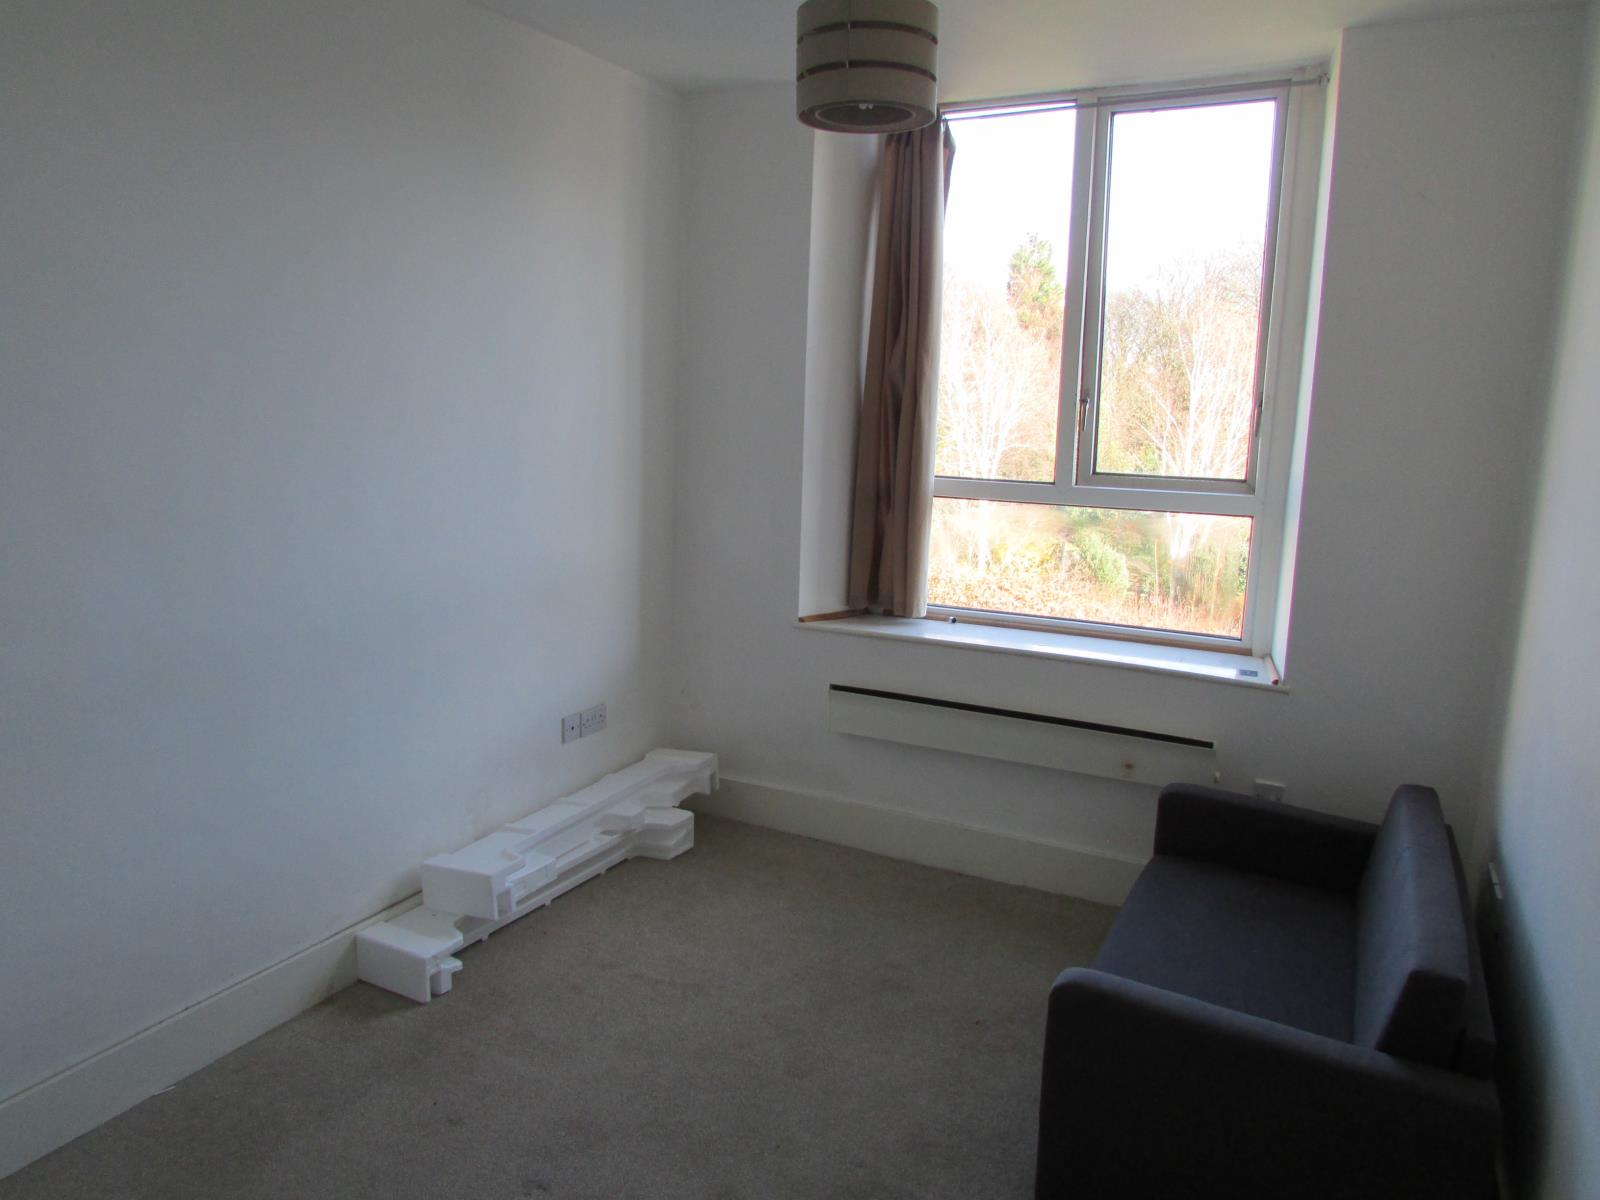 Apt 8 Riverside Court, Woodhead Road, Holmbridge, HD9 2AJ